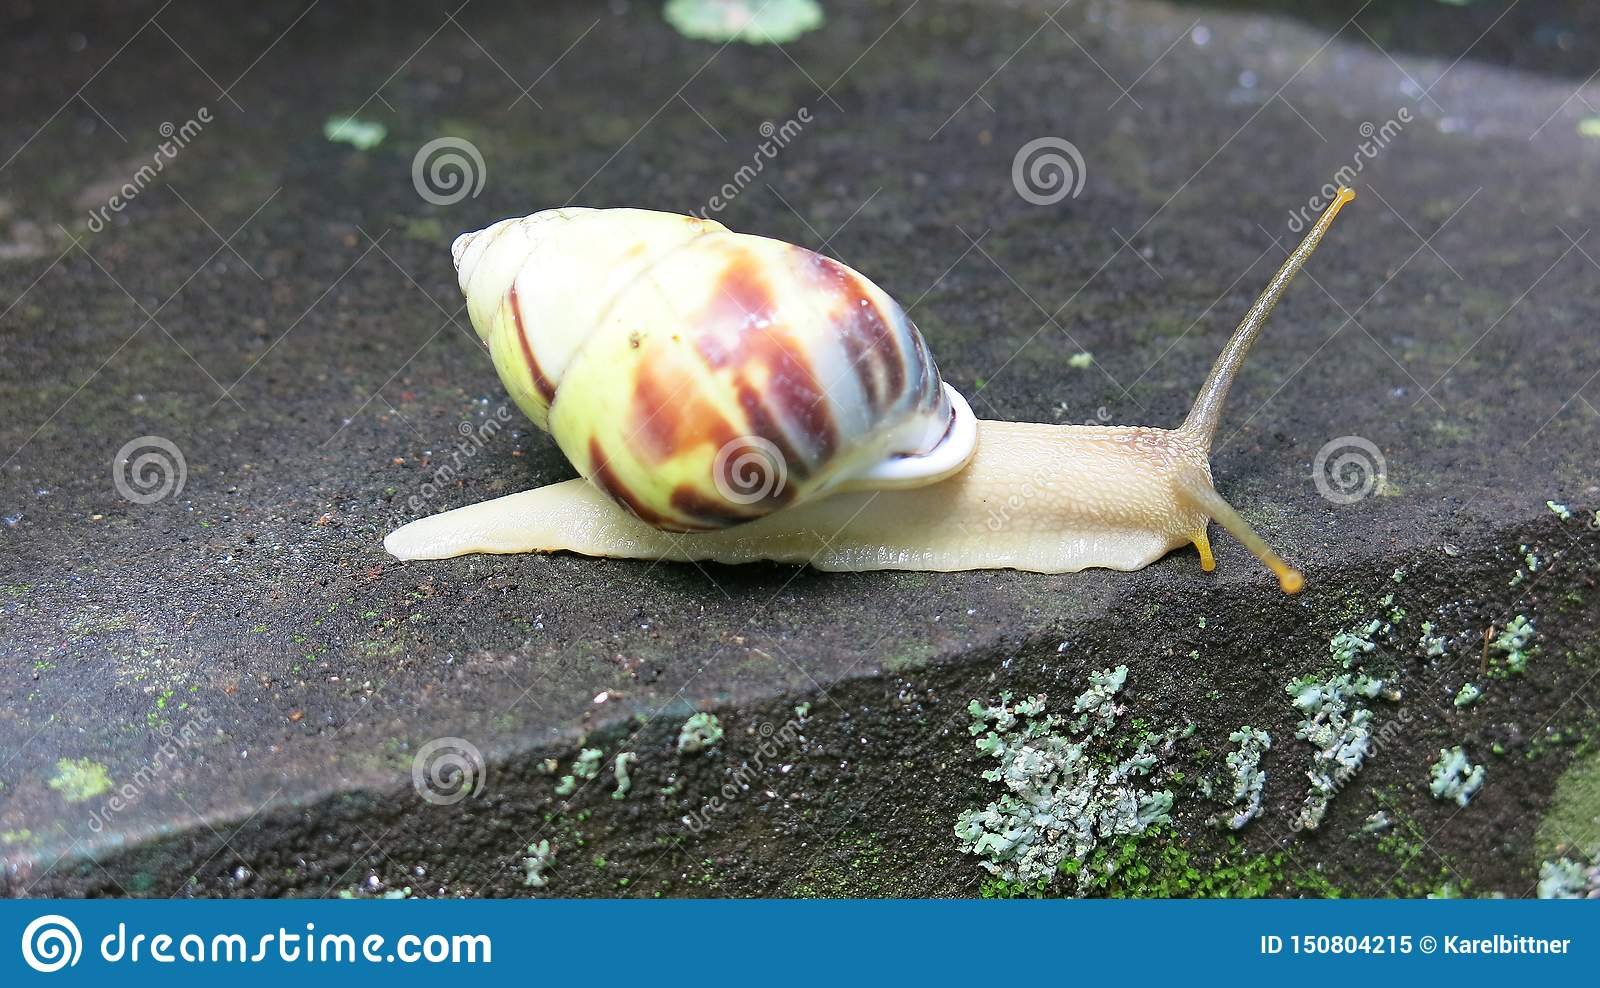 Colorful snail on concrete step. Long antennae. Out of the shell.